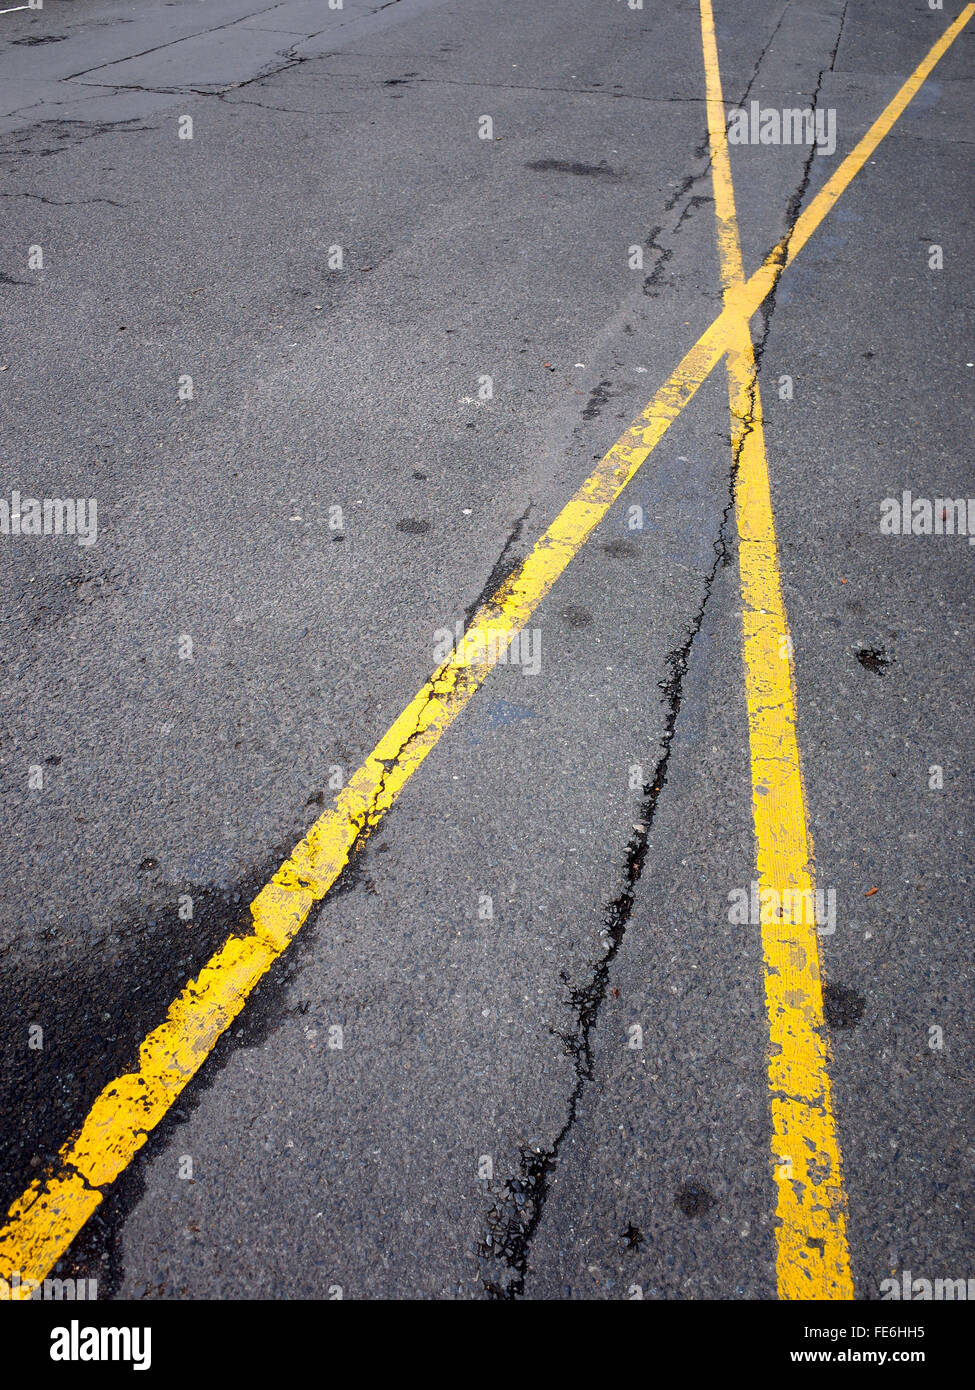 High Angle View Of Yellow Cross Road Markings On Street - Stock Image